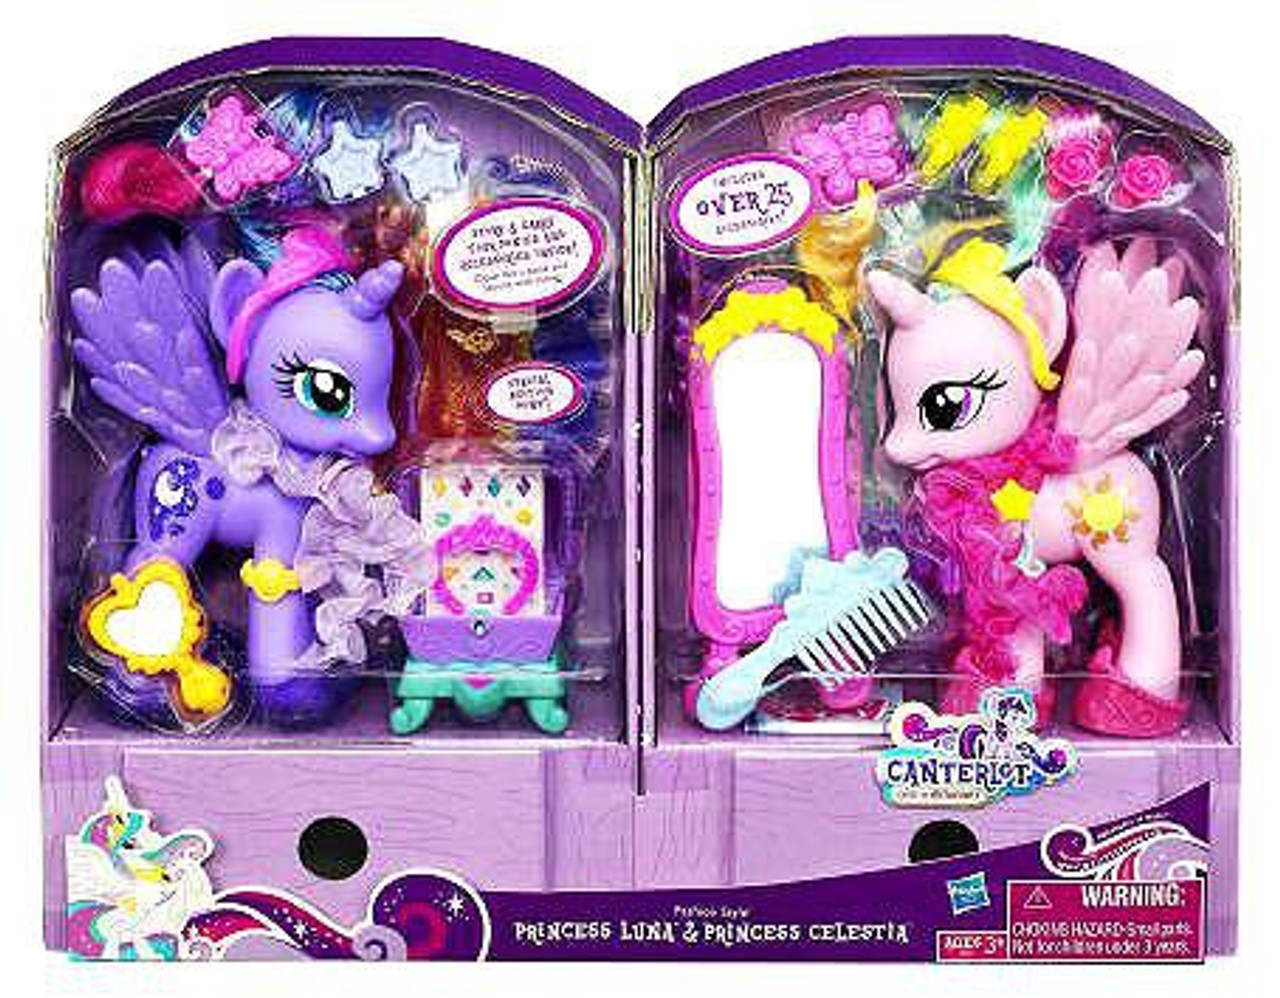 My Little Pony Canterlot Fashion Style Princess Luna & Princess Celestia Exclusive 6-Inch Figure 2-Pack